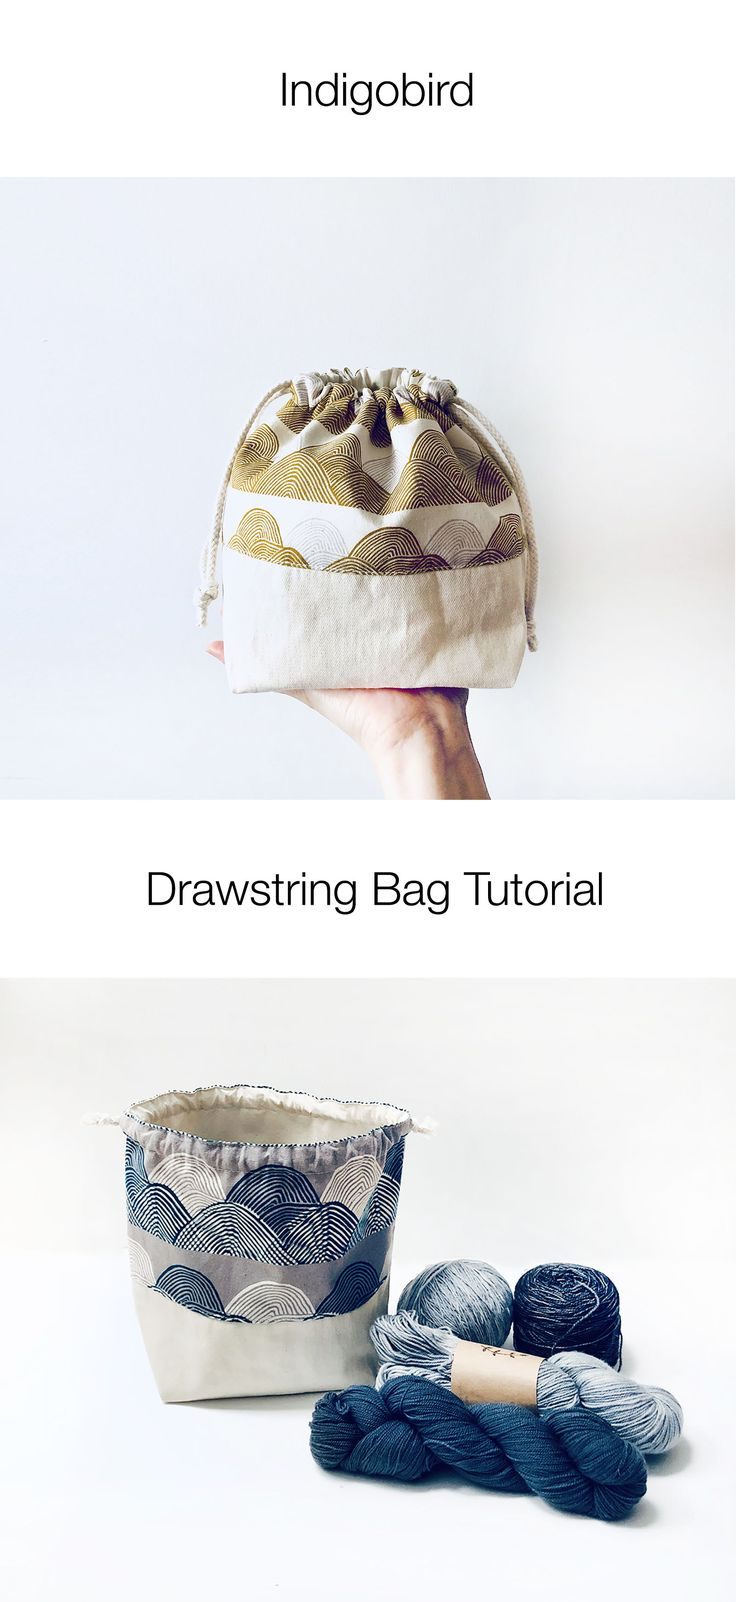 Bundle Dyed And Screen Printed Botanical Project Bag Projectbag Knitting